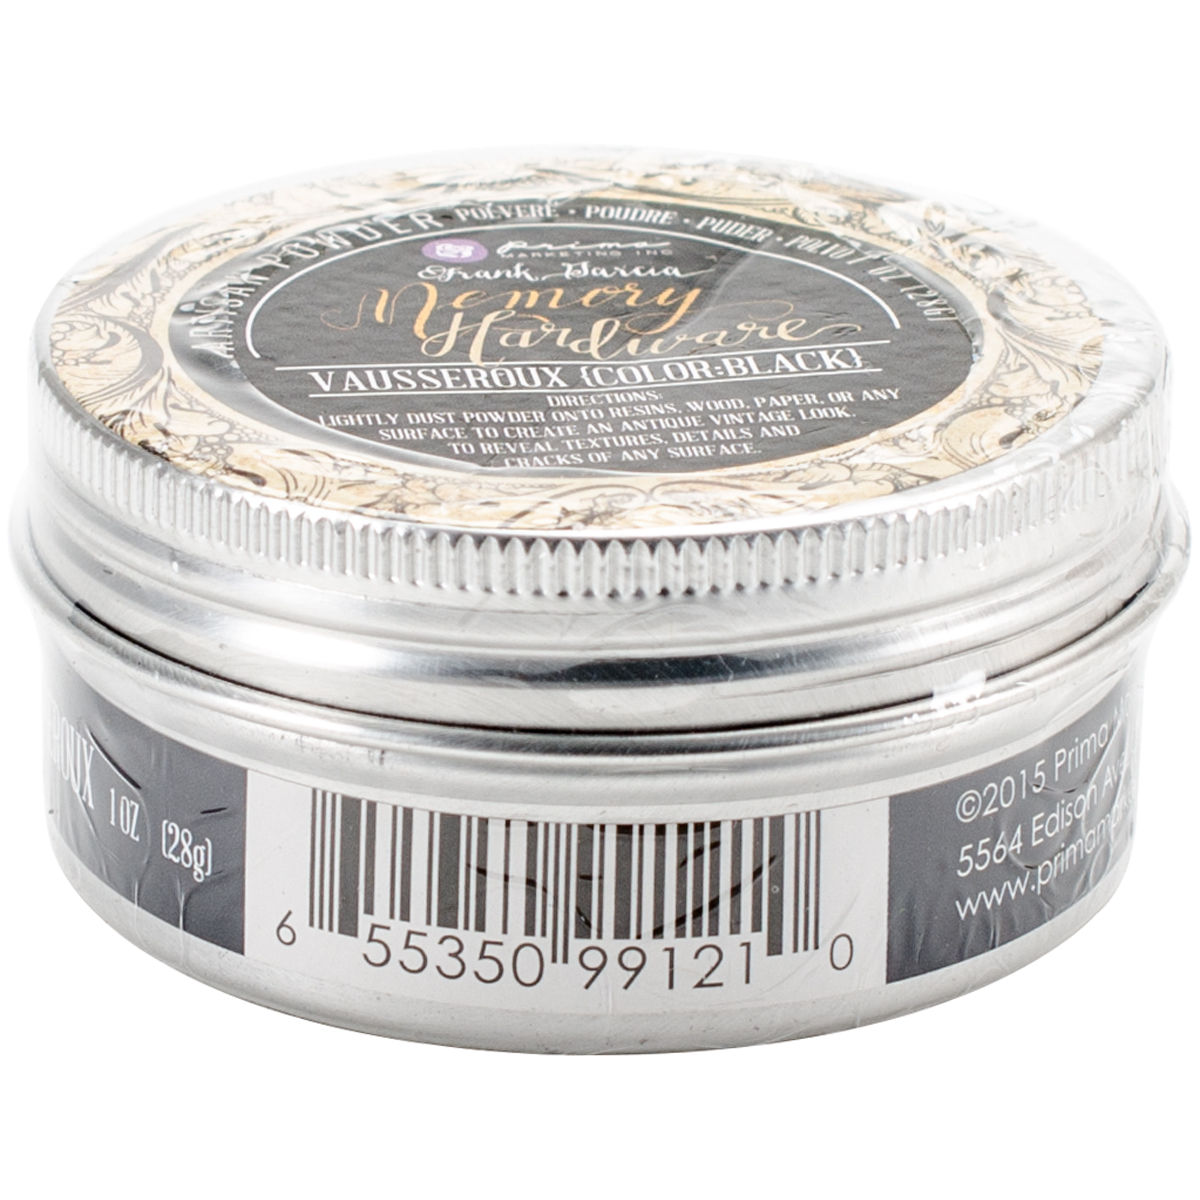 Prima Marketing Memory Hardware Artisan Powder 1oz-Vausseroux